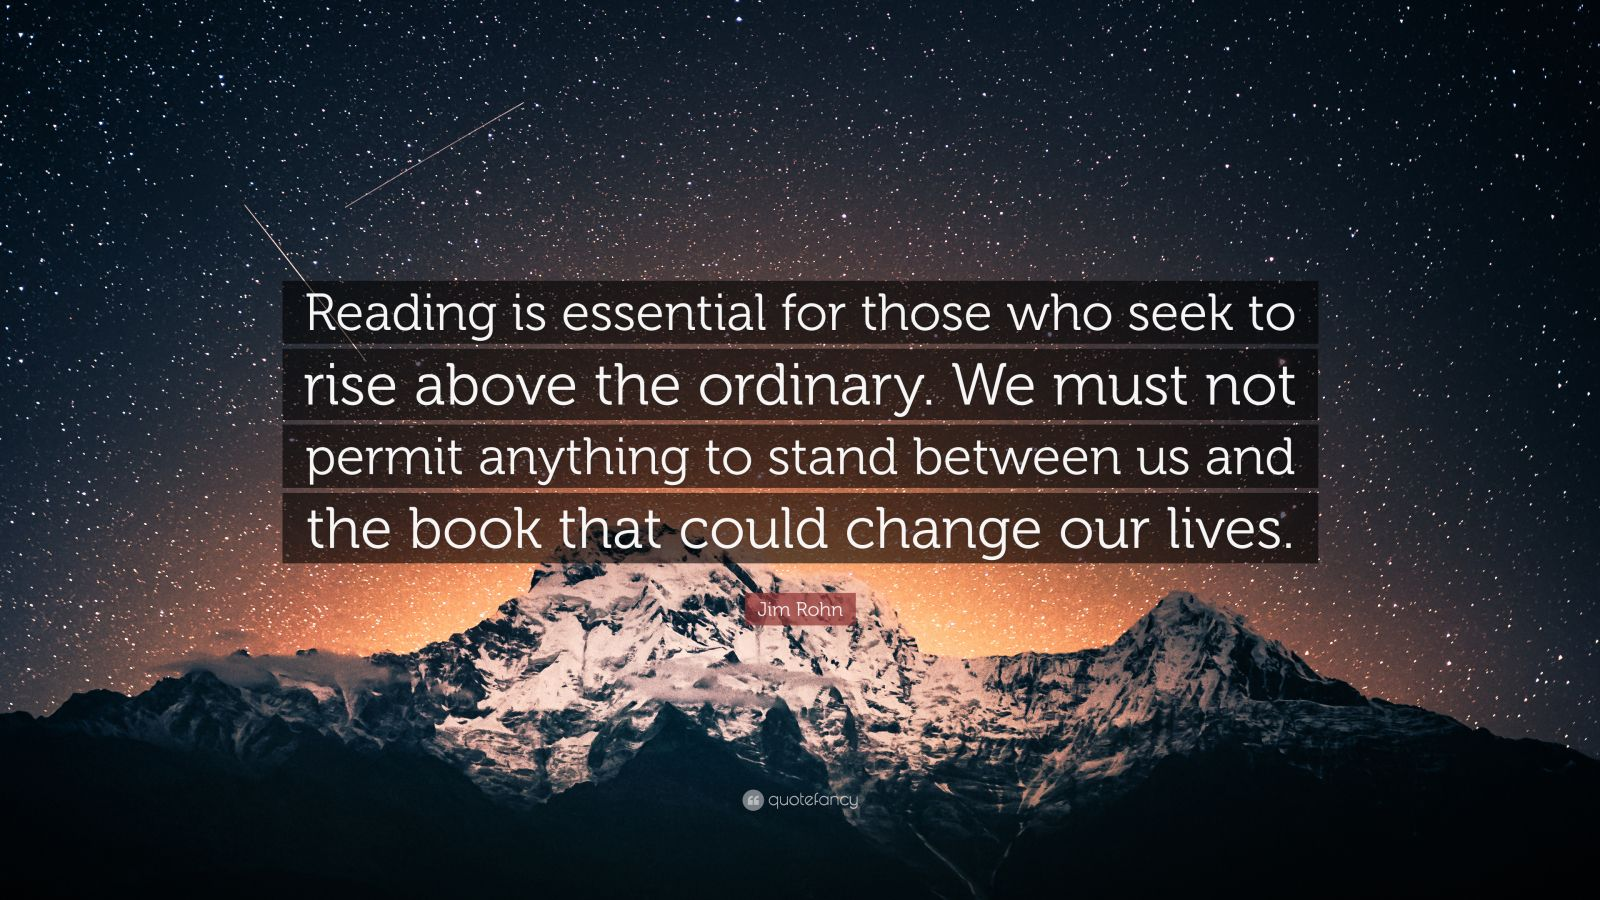 """Jim Rohn Quote: """"Reading is essential for those who seek to rise above the ordinary. We must not permit anything to stand between us and the book that could change our lives."""""""